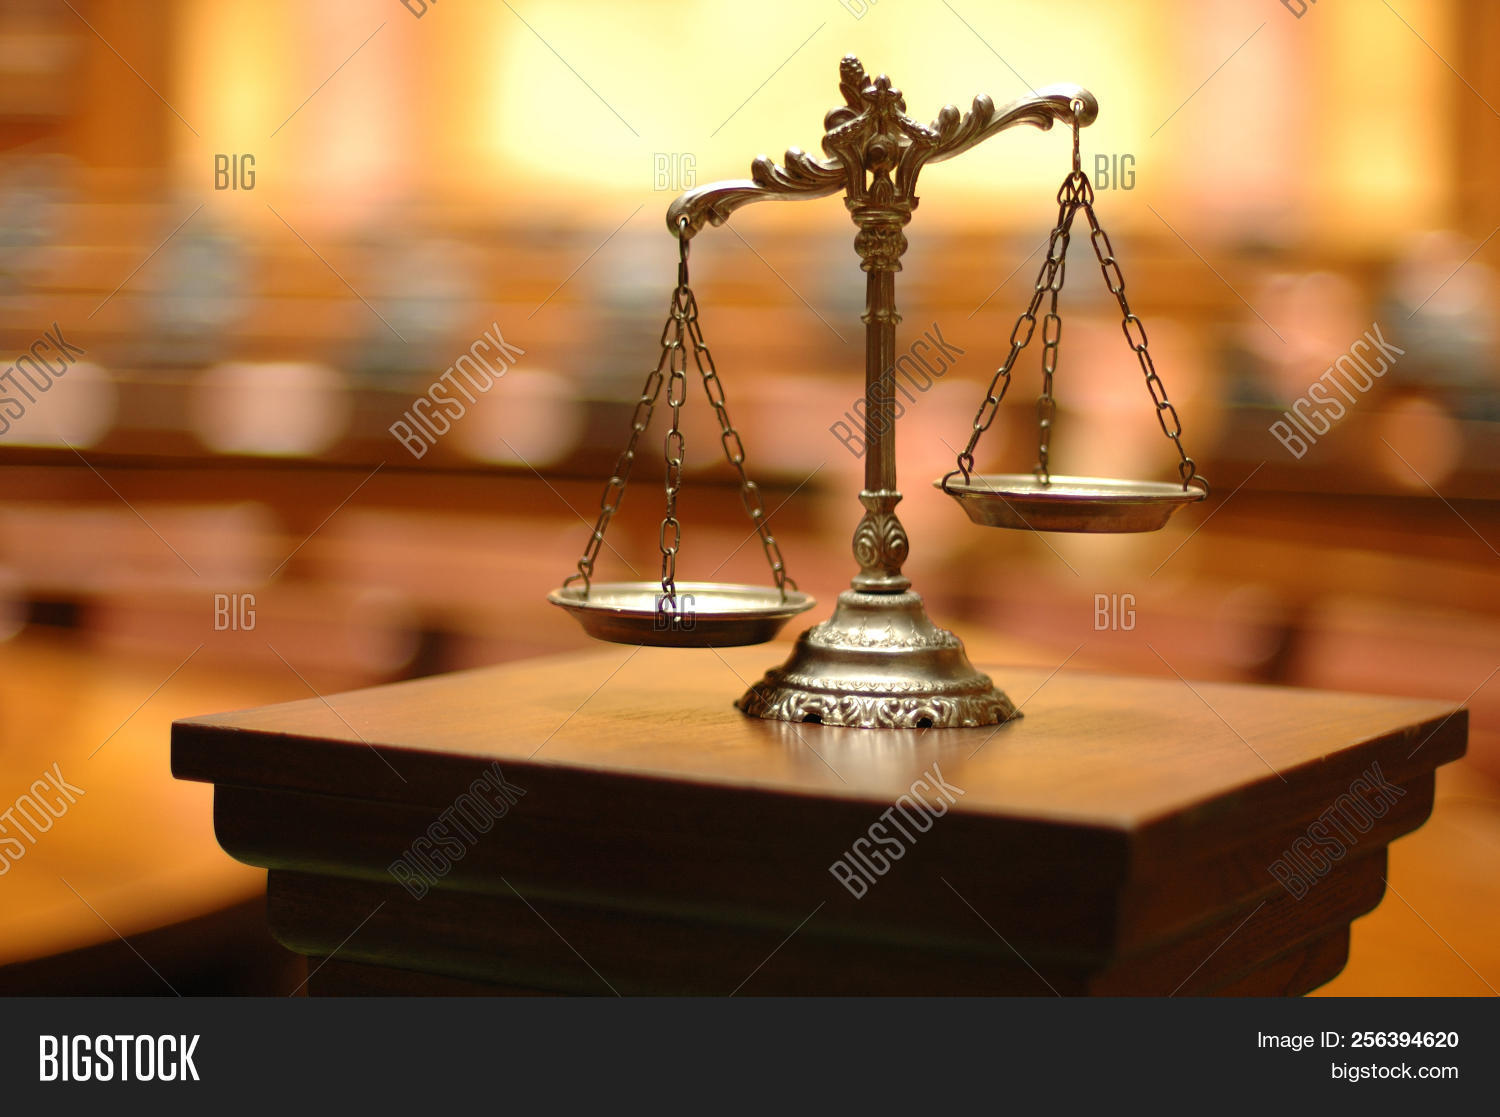 antique,authority,balance,bronze,concept,conceptual,court,courthouse,courtroom,crime,criminal,defendant,freedom,guilt,honesty,innocence,judge,judgement,jury,justice,law,lawyer,legal,liberty,litigate,litigation,measure,measurement,old,plaintiff,punishment,scale,sentence,symbol,system,trial,verdict,weigh,weight